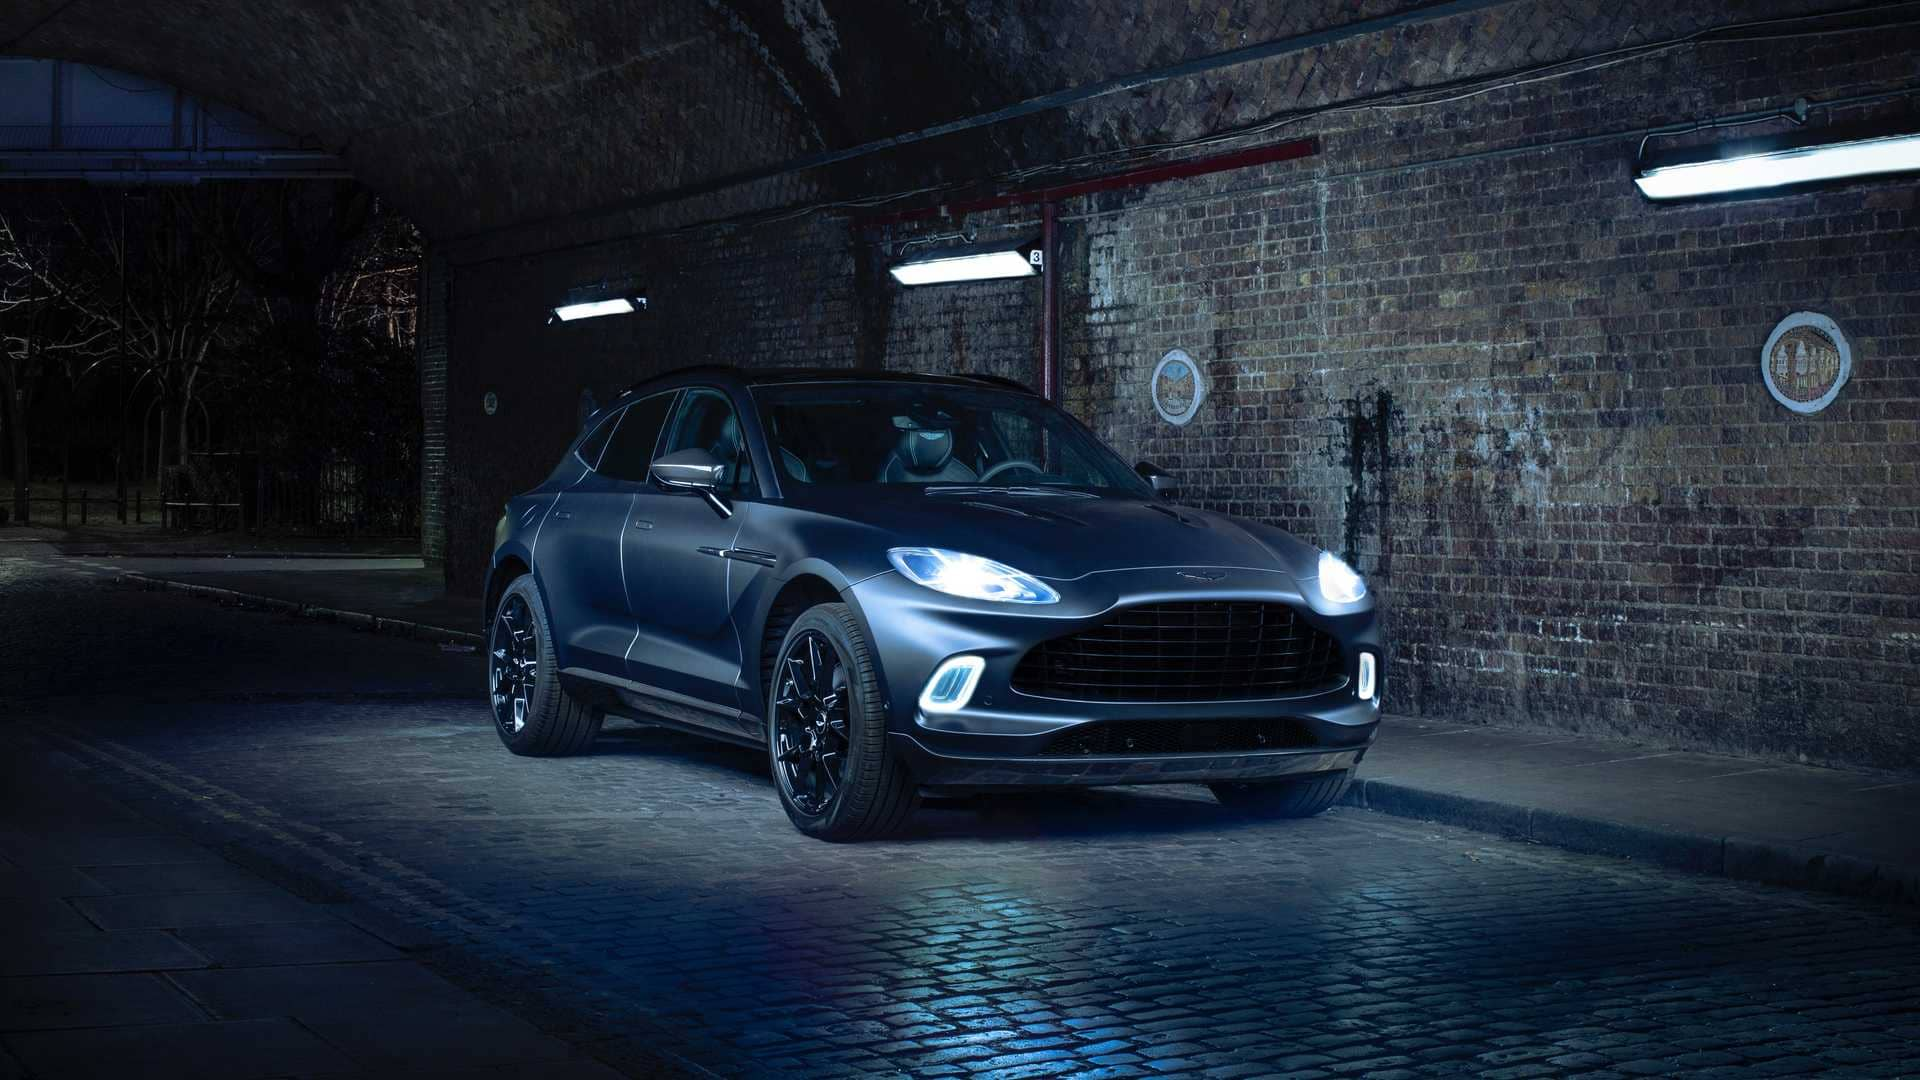 the-aston-martin-dbx-by-q-is-the-bespoke-suv-you-ve-been-waiting-forcx